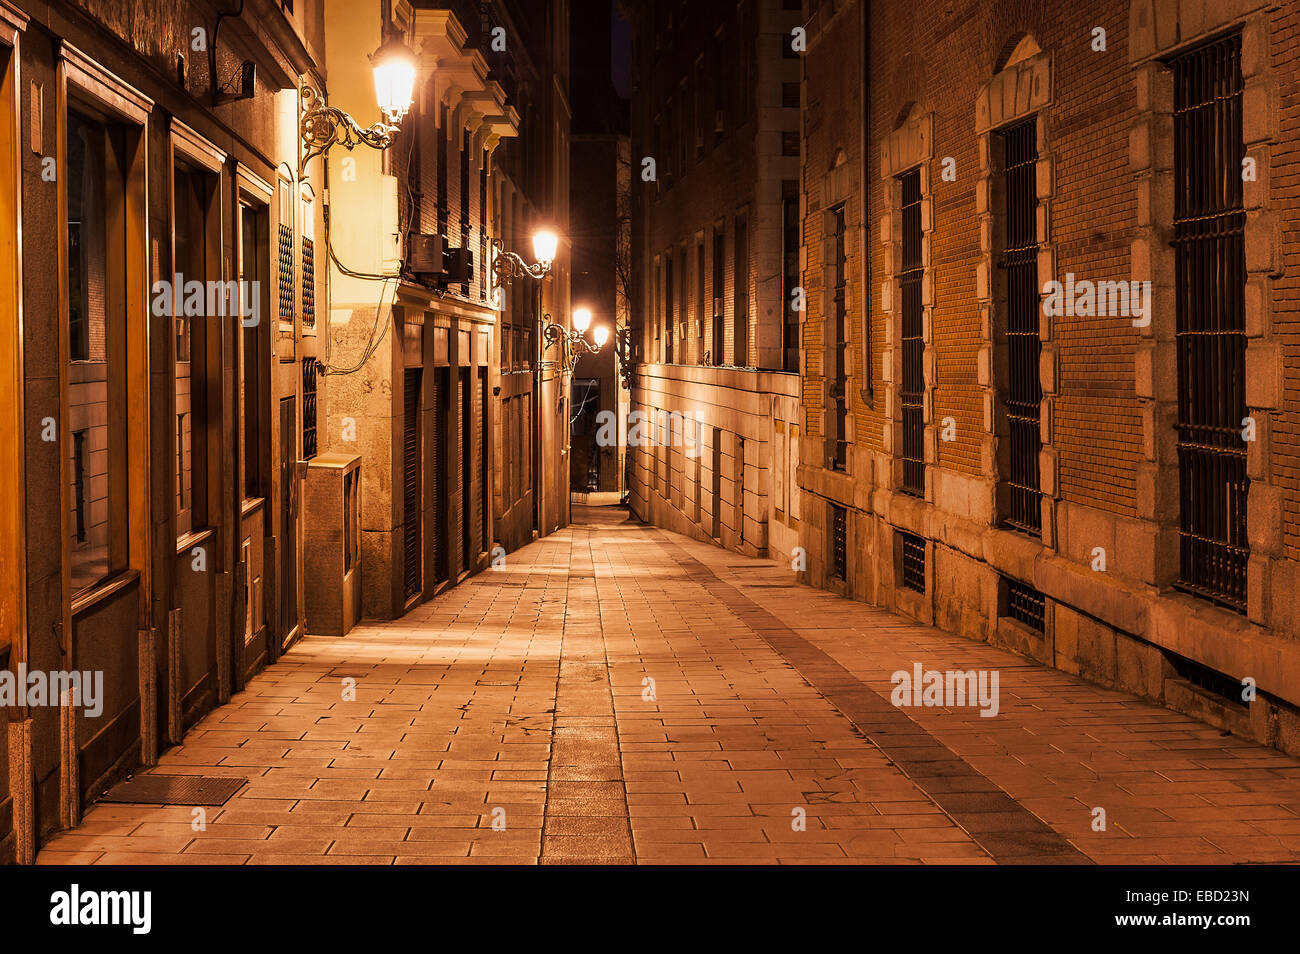 Narrow alley illuminated by street lamps at night, Madrid, Spain - Stock Image